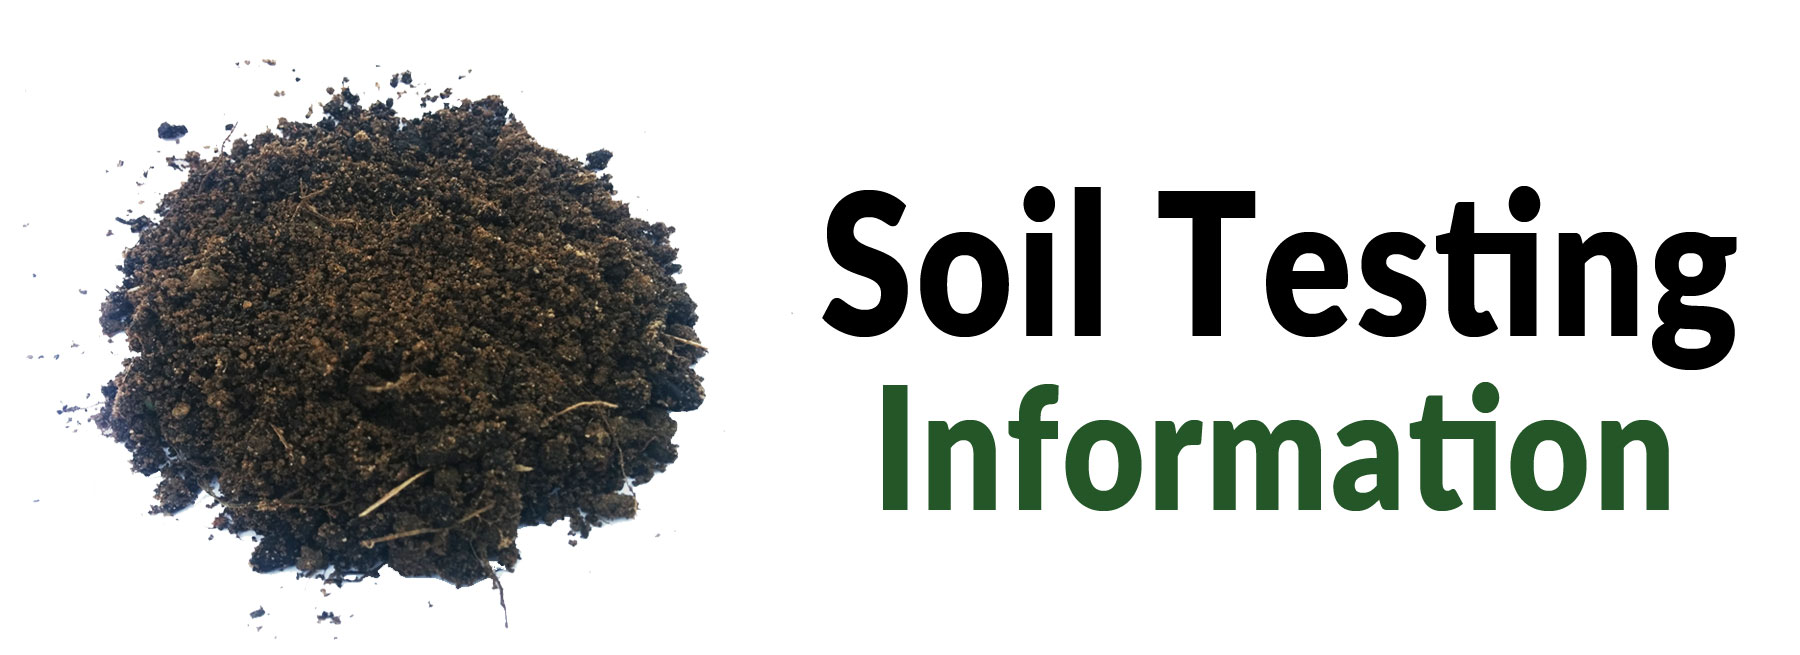 for questions on soil testing